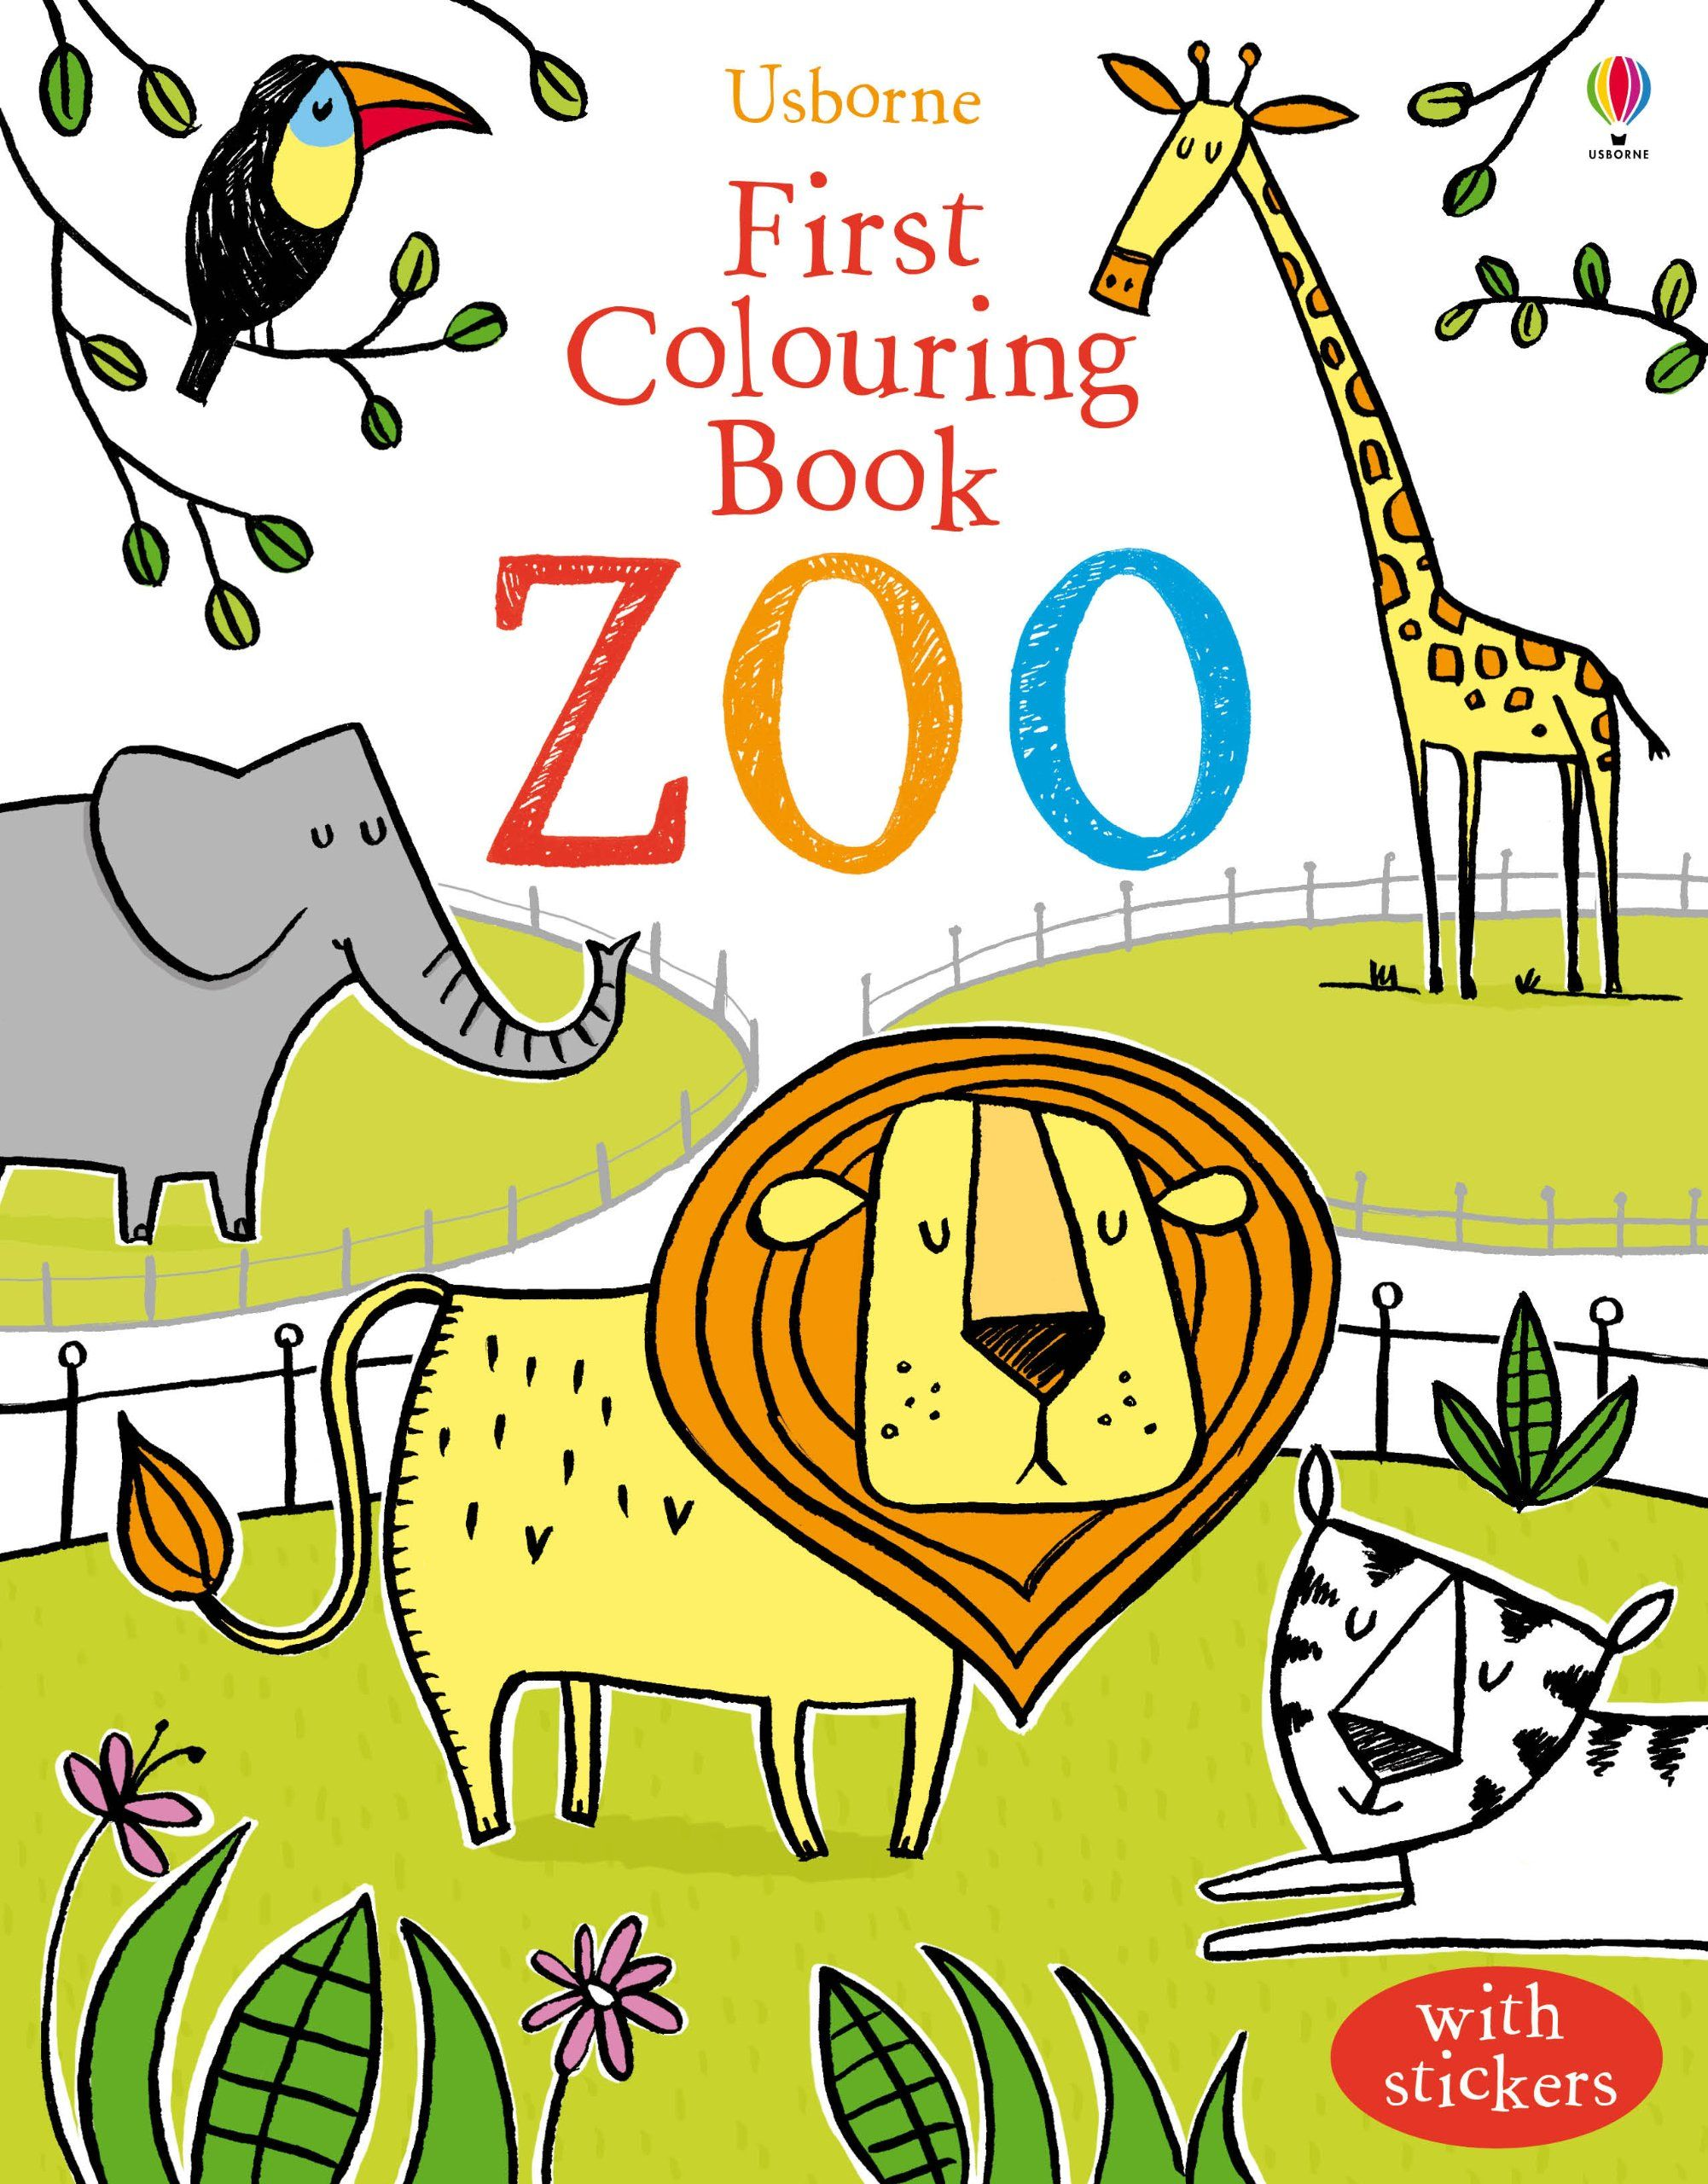 First Colouring Book Zoo Usborne First Colouring Books Amazon Co Uk Jessica Greenwell Candice Whatmore Coloring Books Usborne Books Art Drawings For Kids